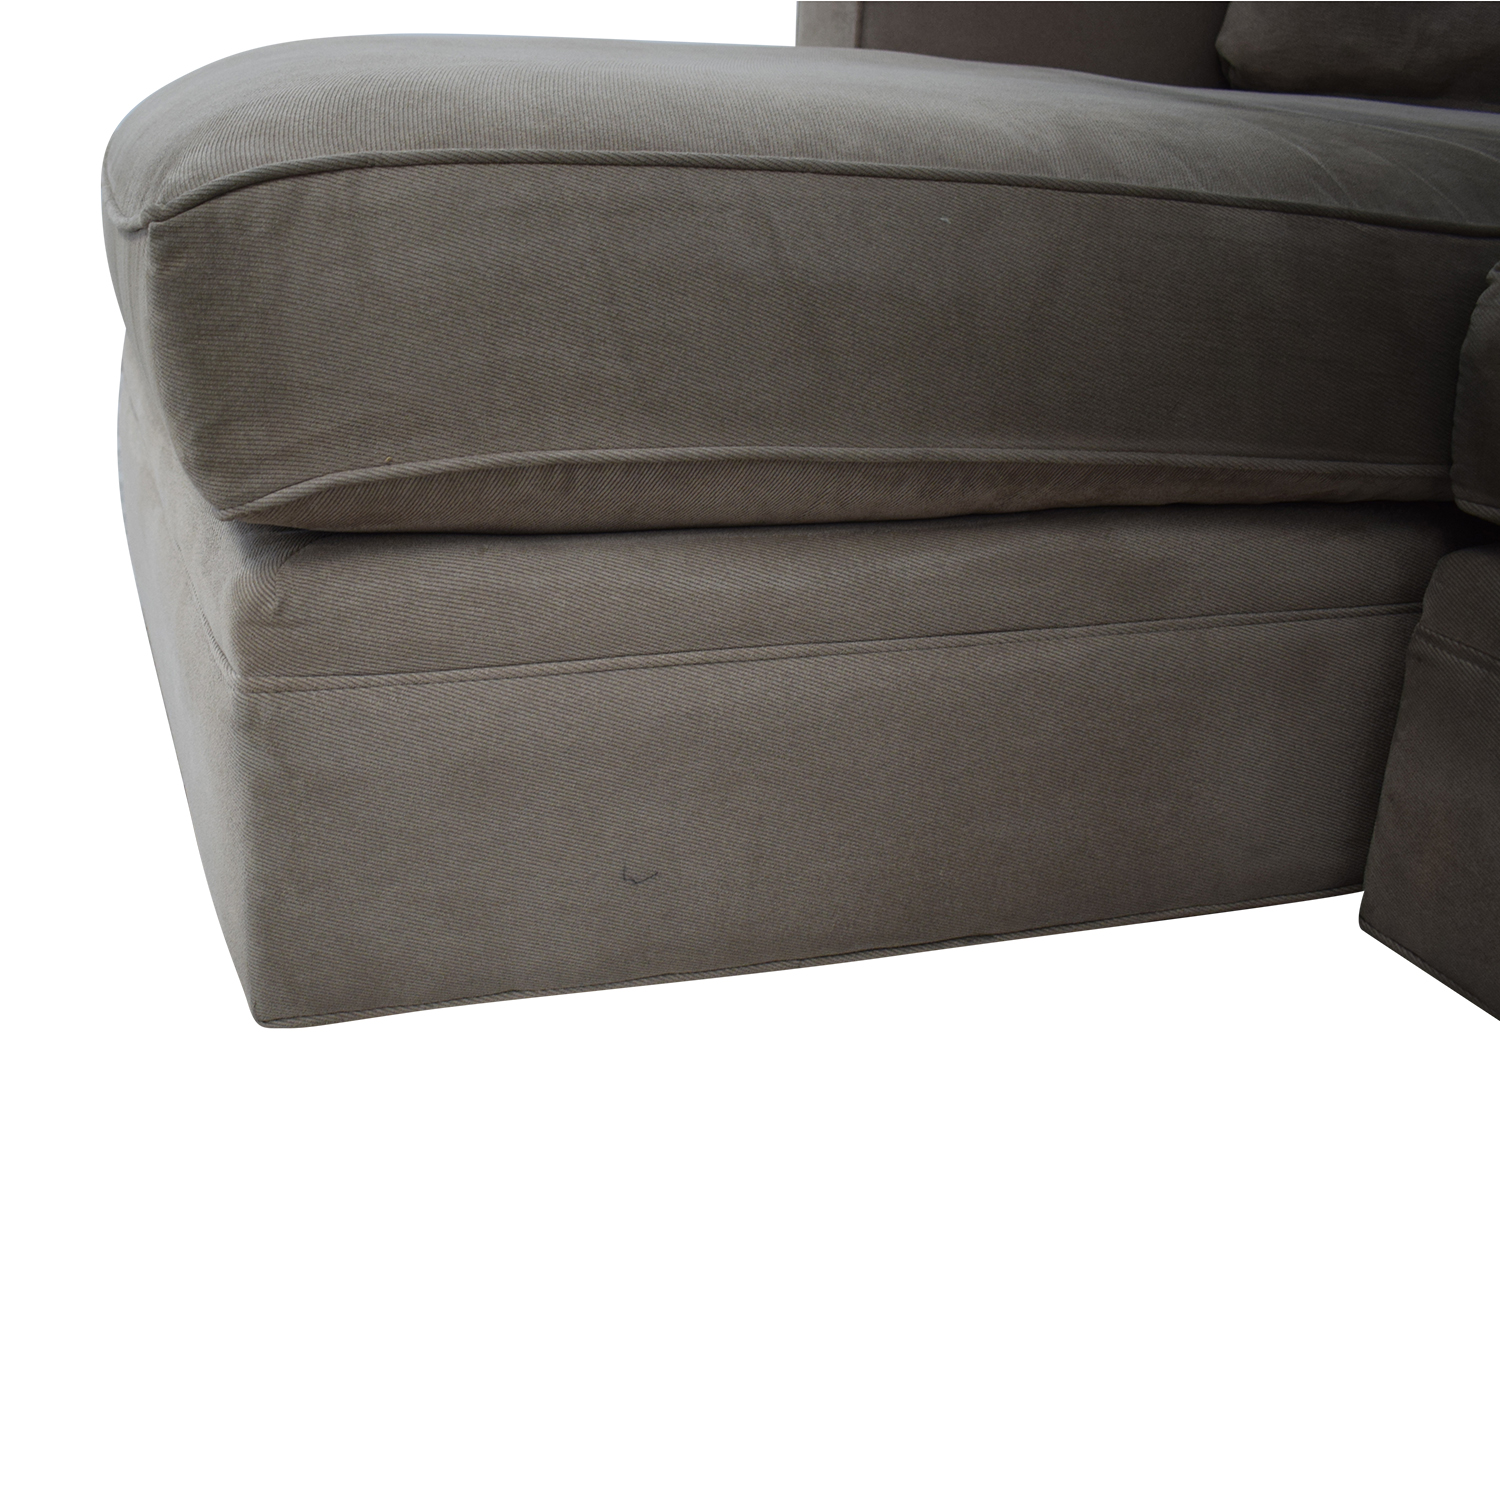 buy Room & Board Room & Board Orson Sectional Couch online